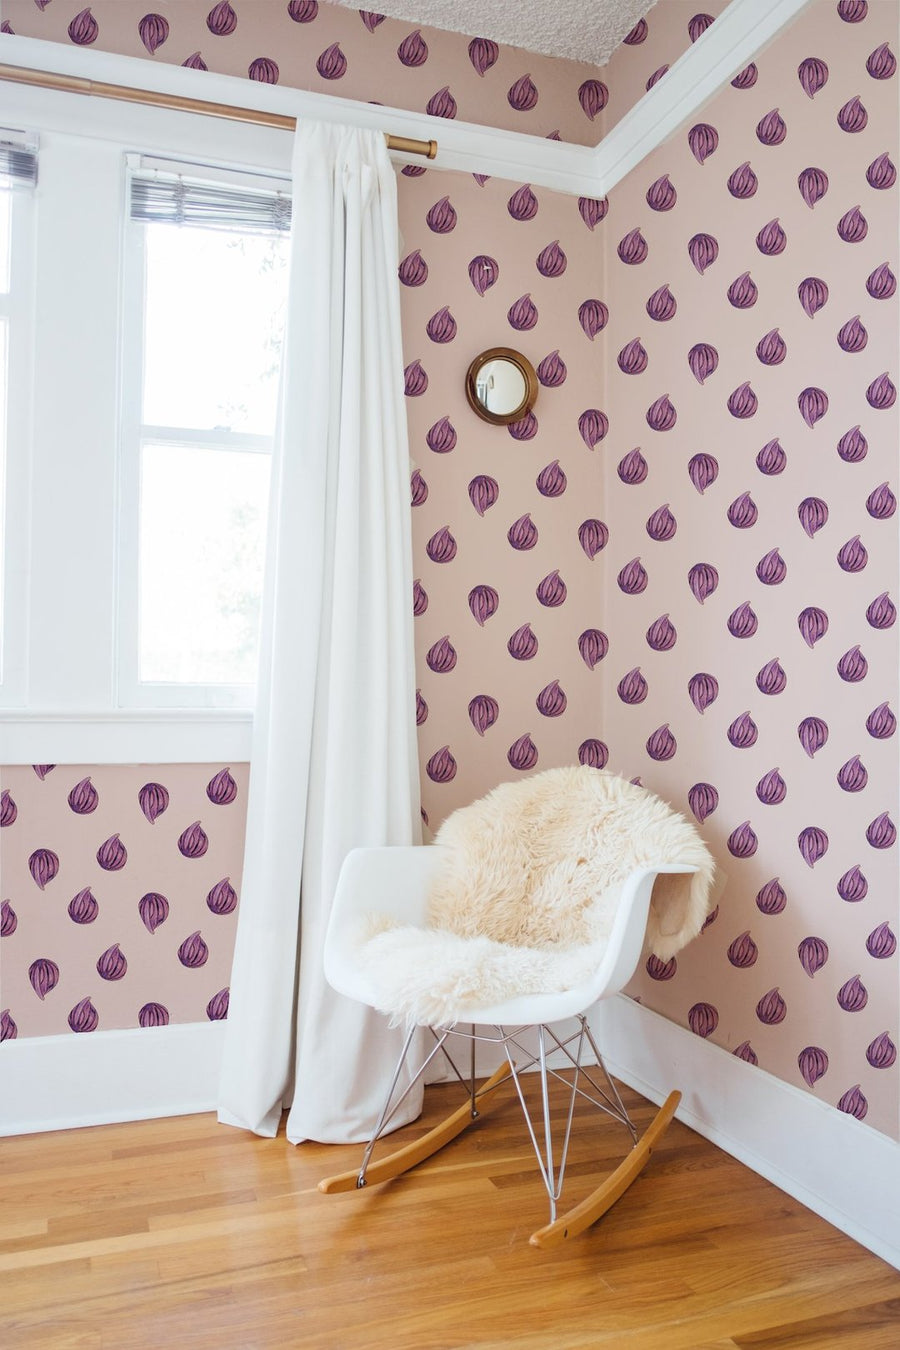 pink wallpaper, pink fig wallpaper, pink girls room wallpaper, easy wallpaper, peel and stick wallpaper, figs, fig wallpaper, watercolor wallpaper, nursery wallpaper, baby room decor, fig plant wallpaper, blush wallpaper, purple fig wallpaper, mauve wallpaper